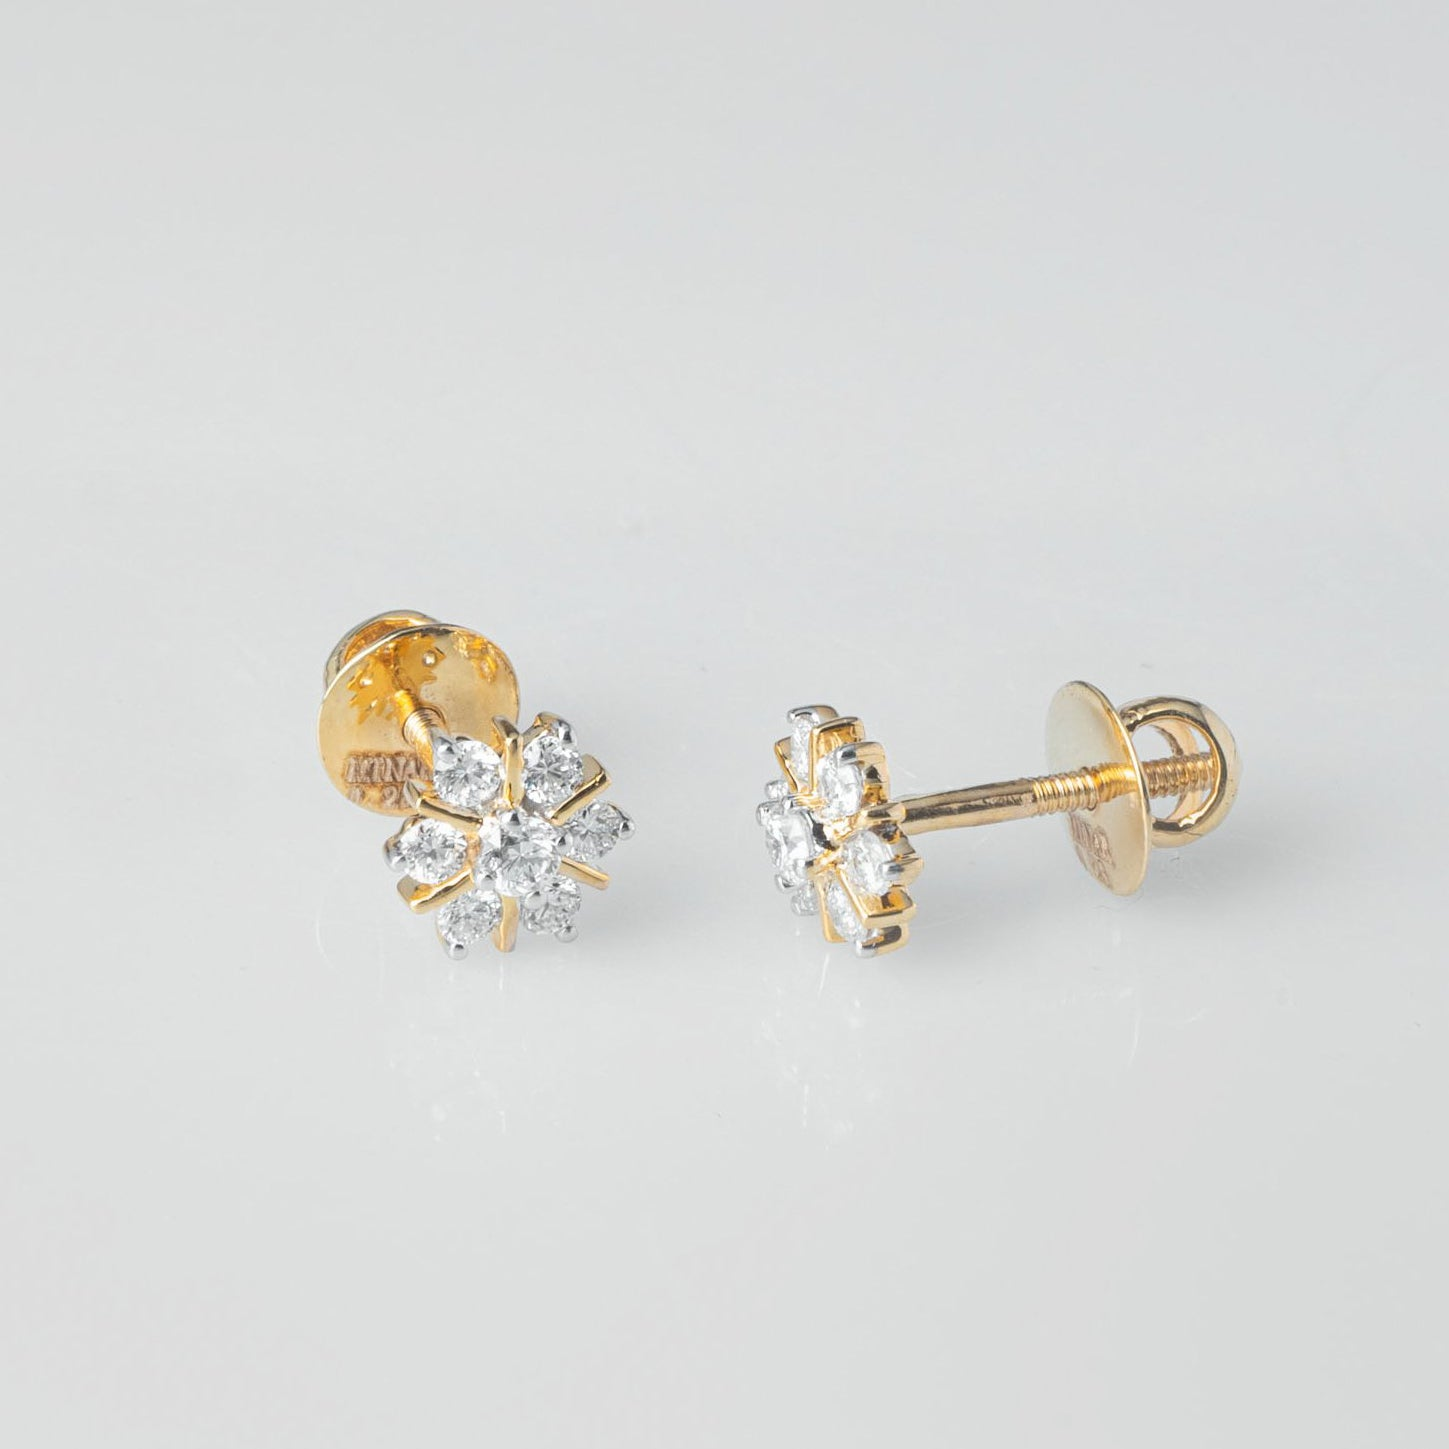 18ct Yellow Gold 0.28ct Cluster Cut Diamond Stud Earrings (MCS3682)